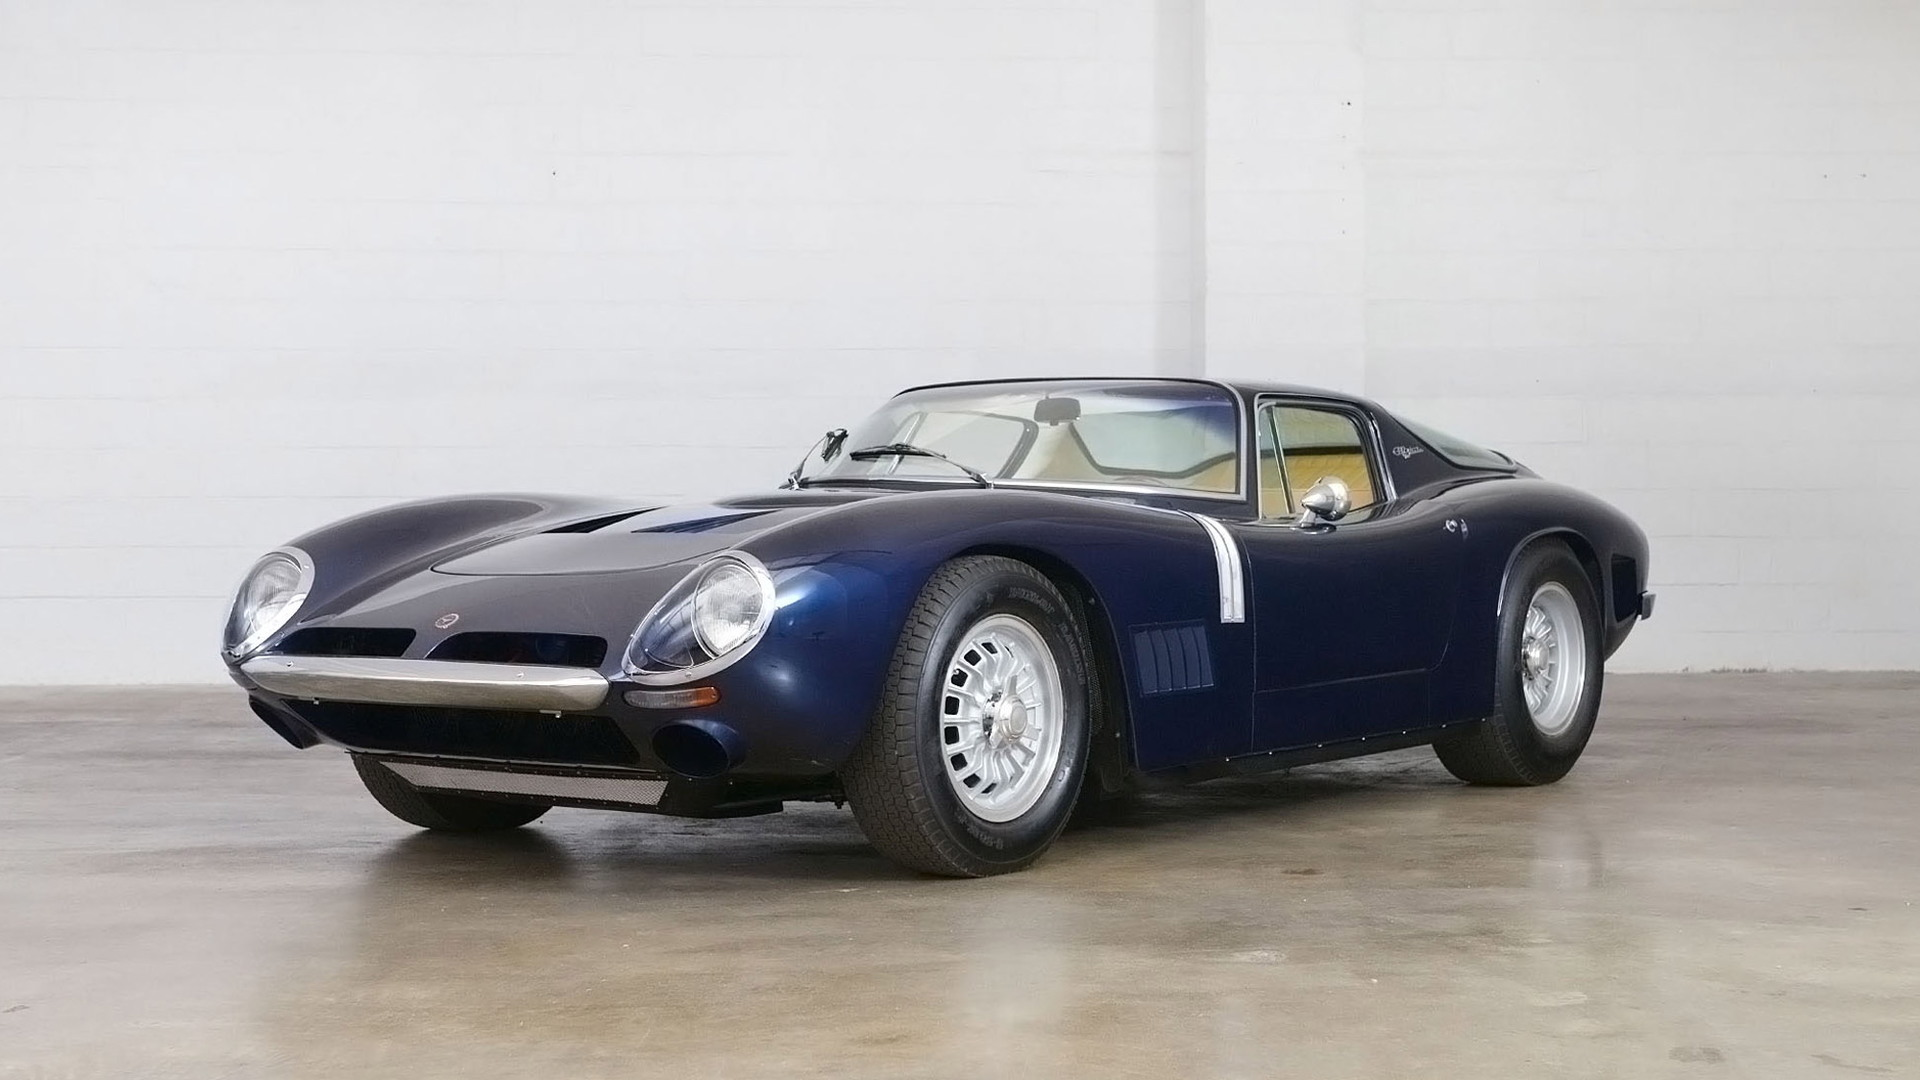 1968 Bizzarrini Strada 5300